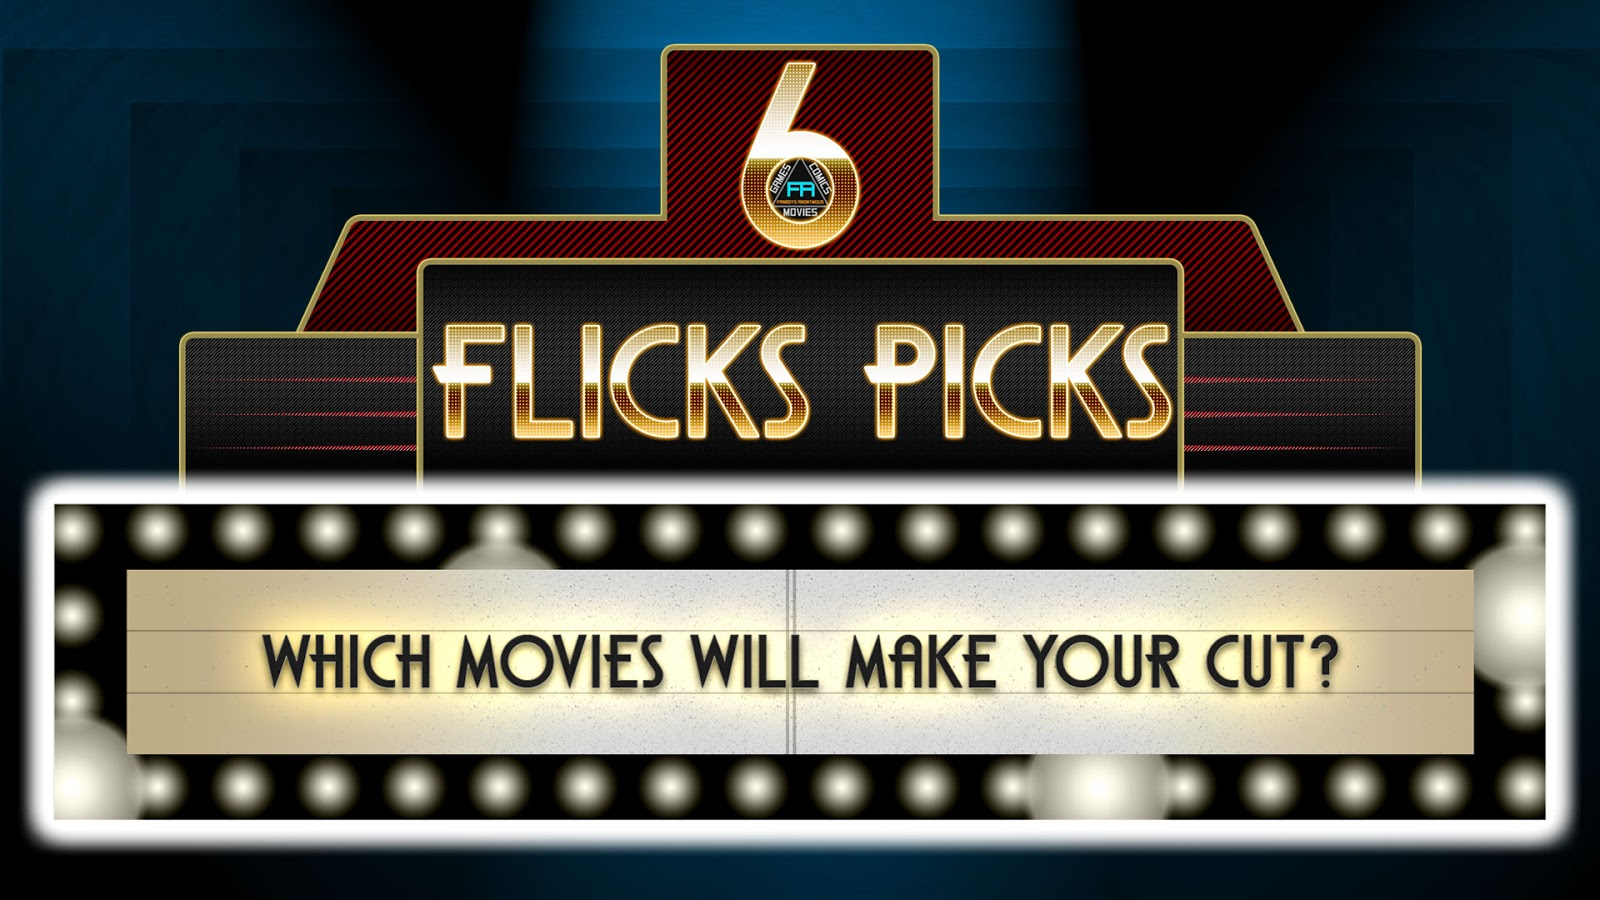 What movies are coming out December 2016 6 Flicks Picks